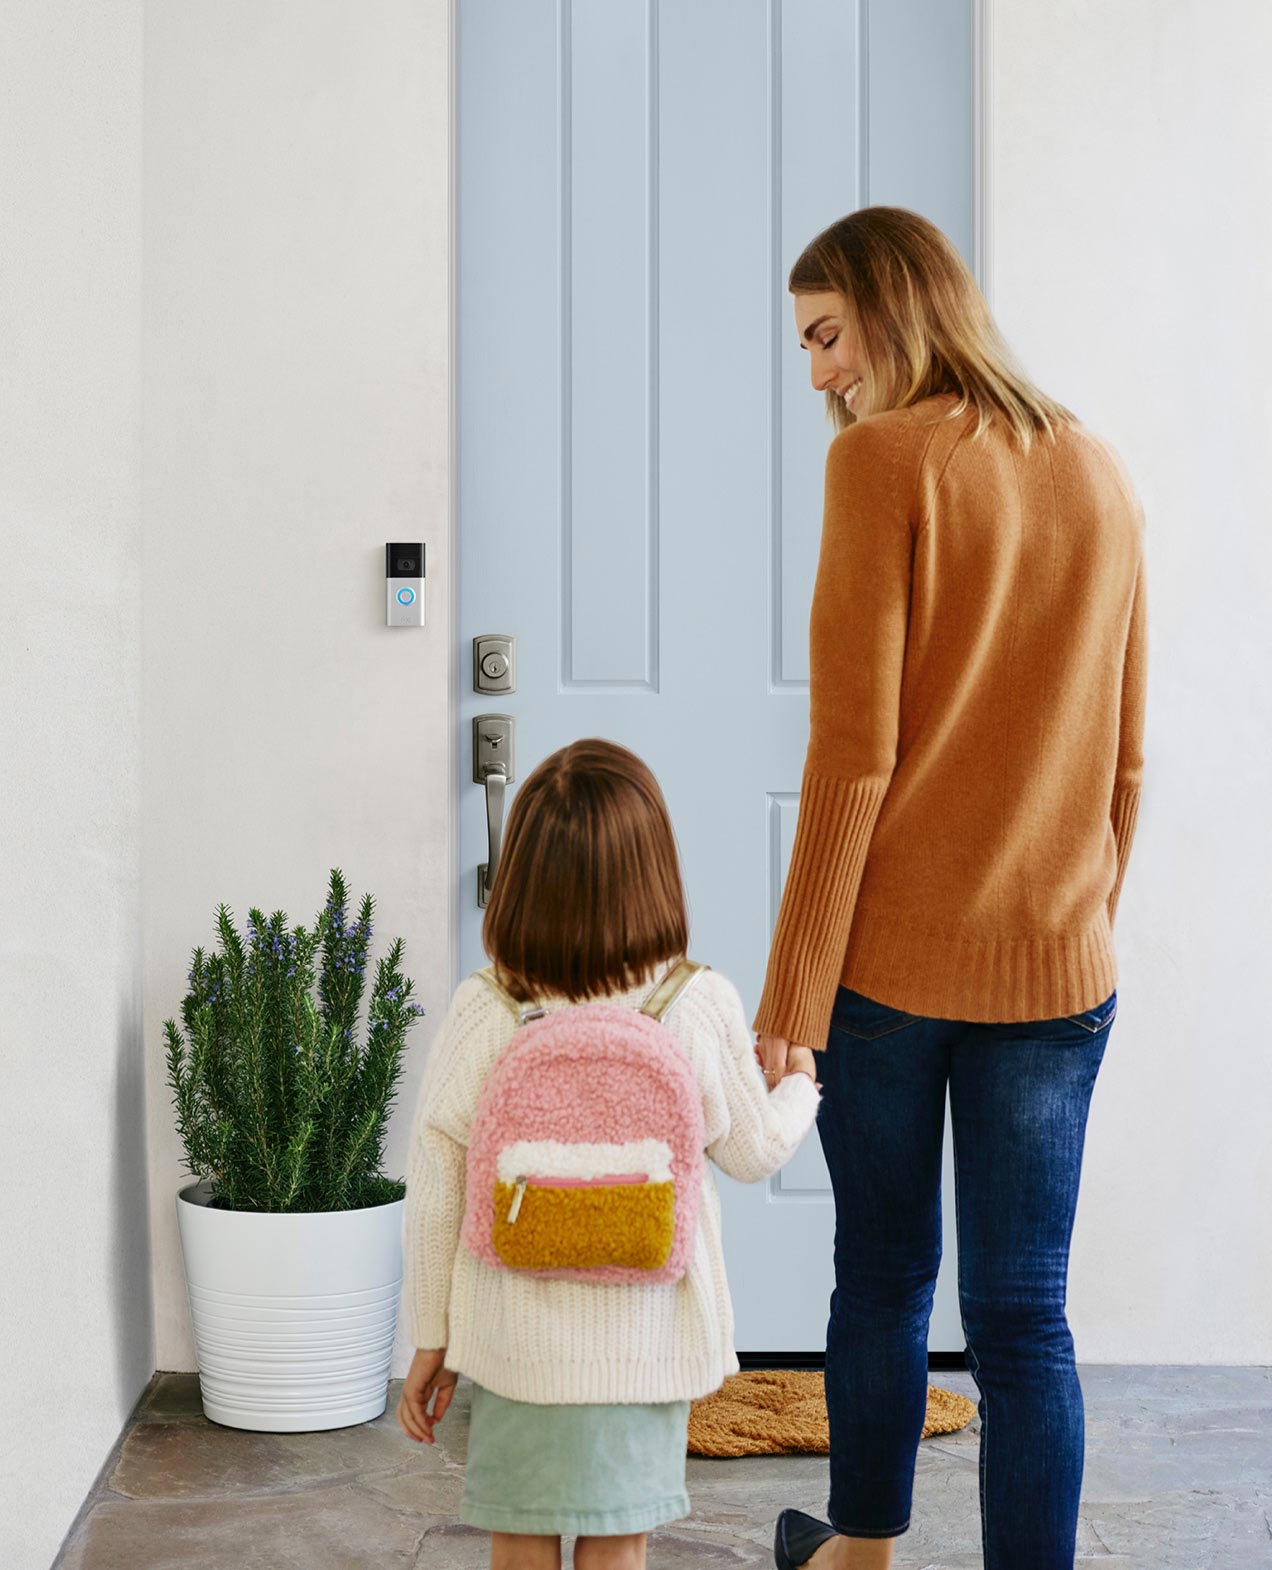 Child and Woman holding hands in the front door.